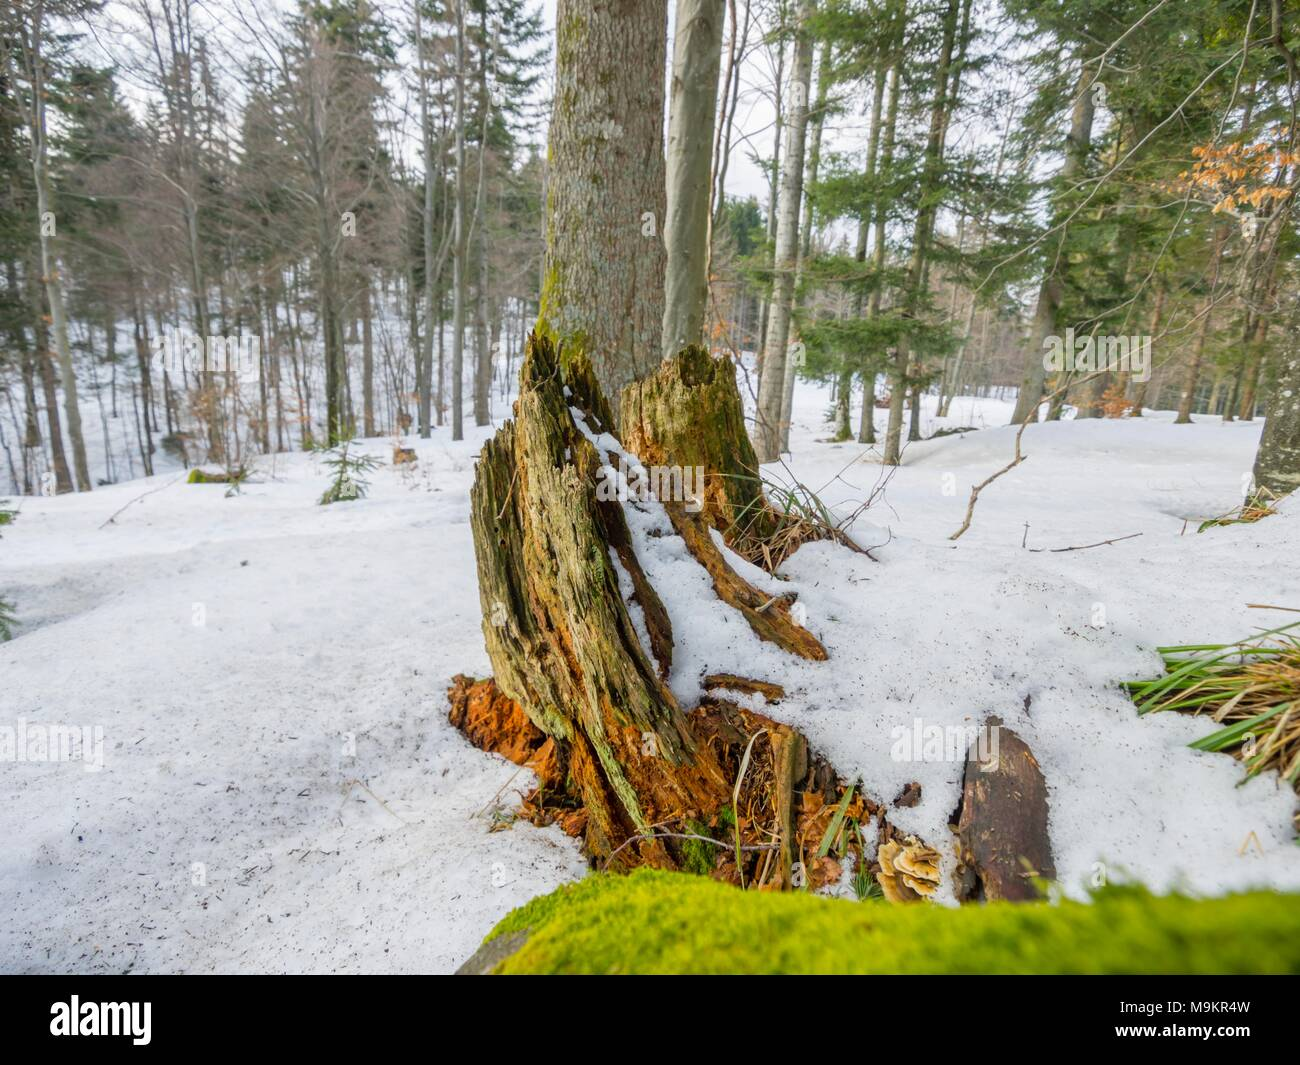 Late Winter trees in forest - Stock Image